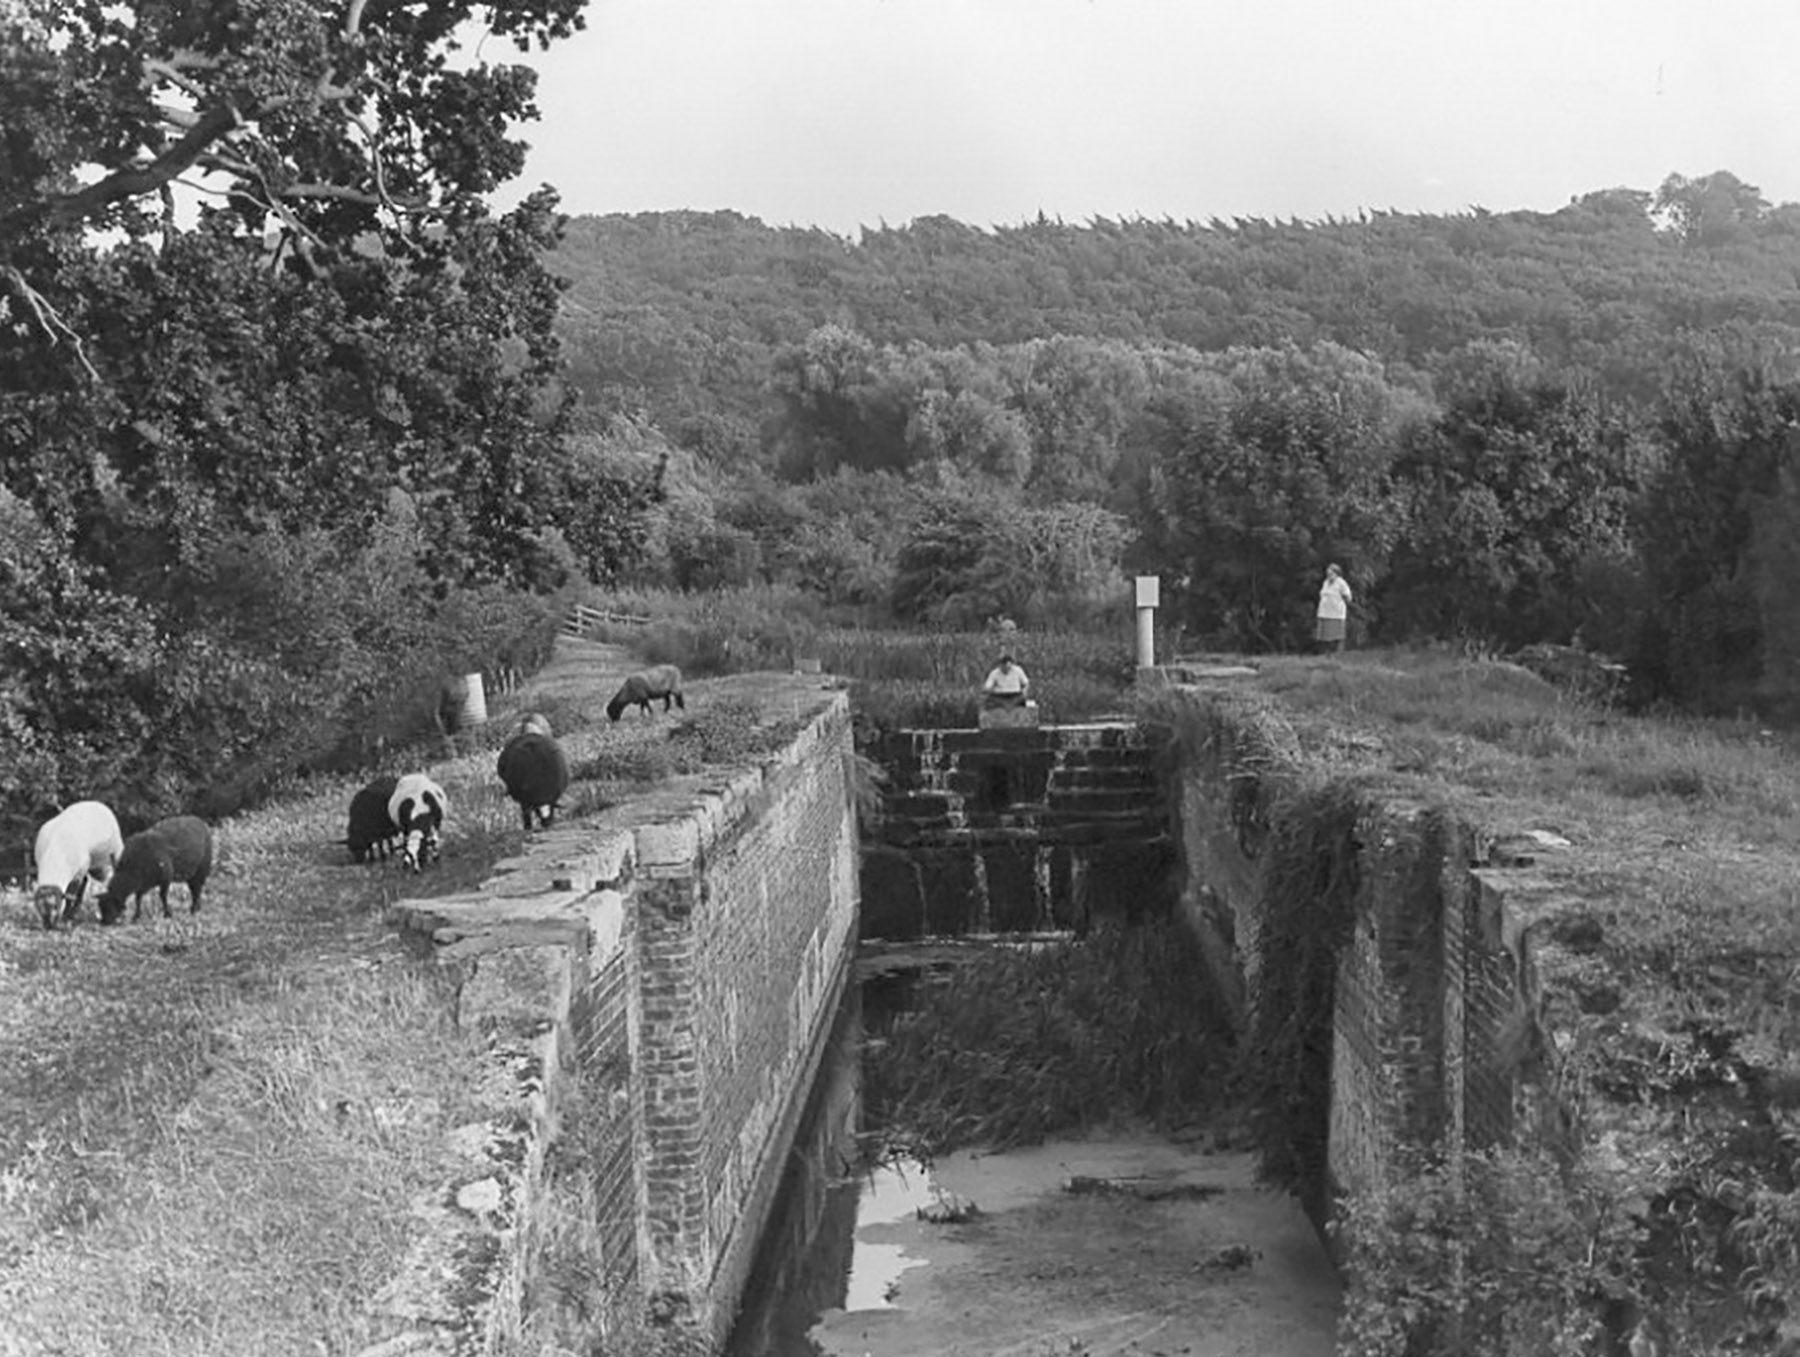 Grantham Canal - Woolsthorpe by Belvoir - Willis's Lock - Then